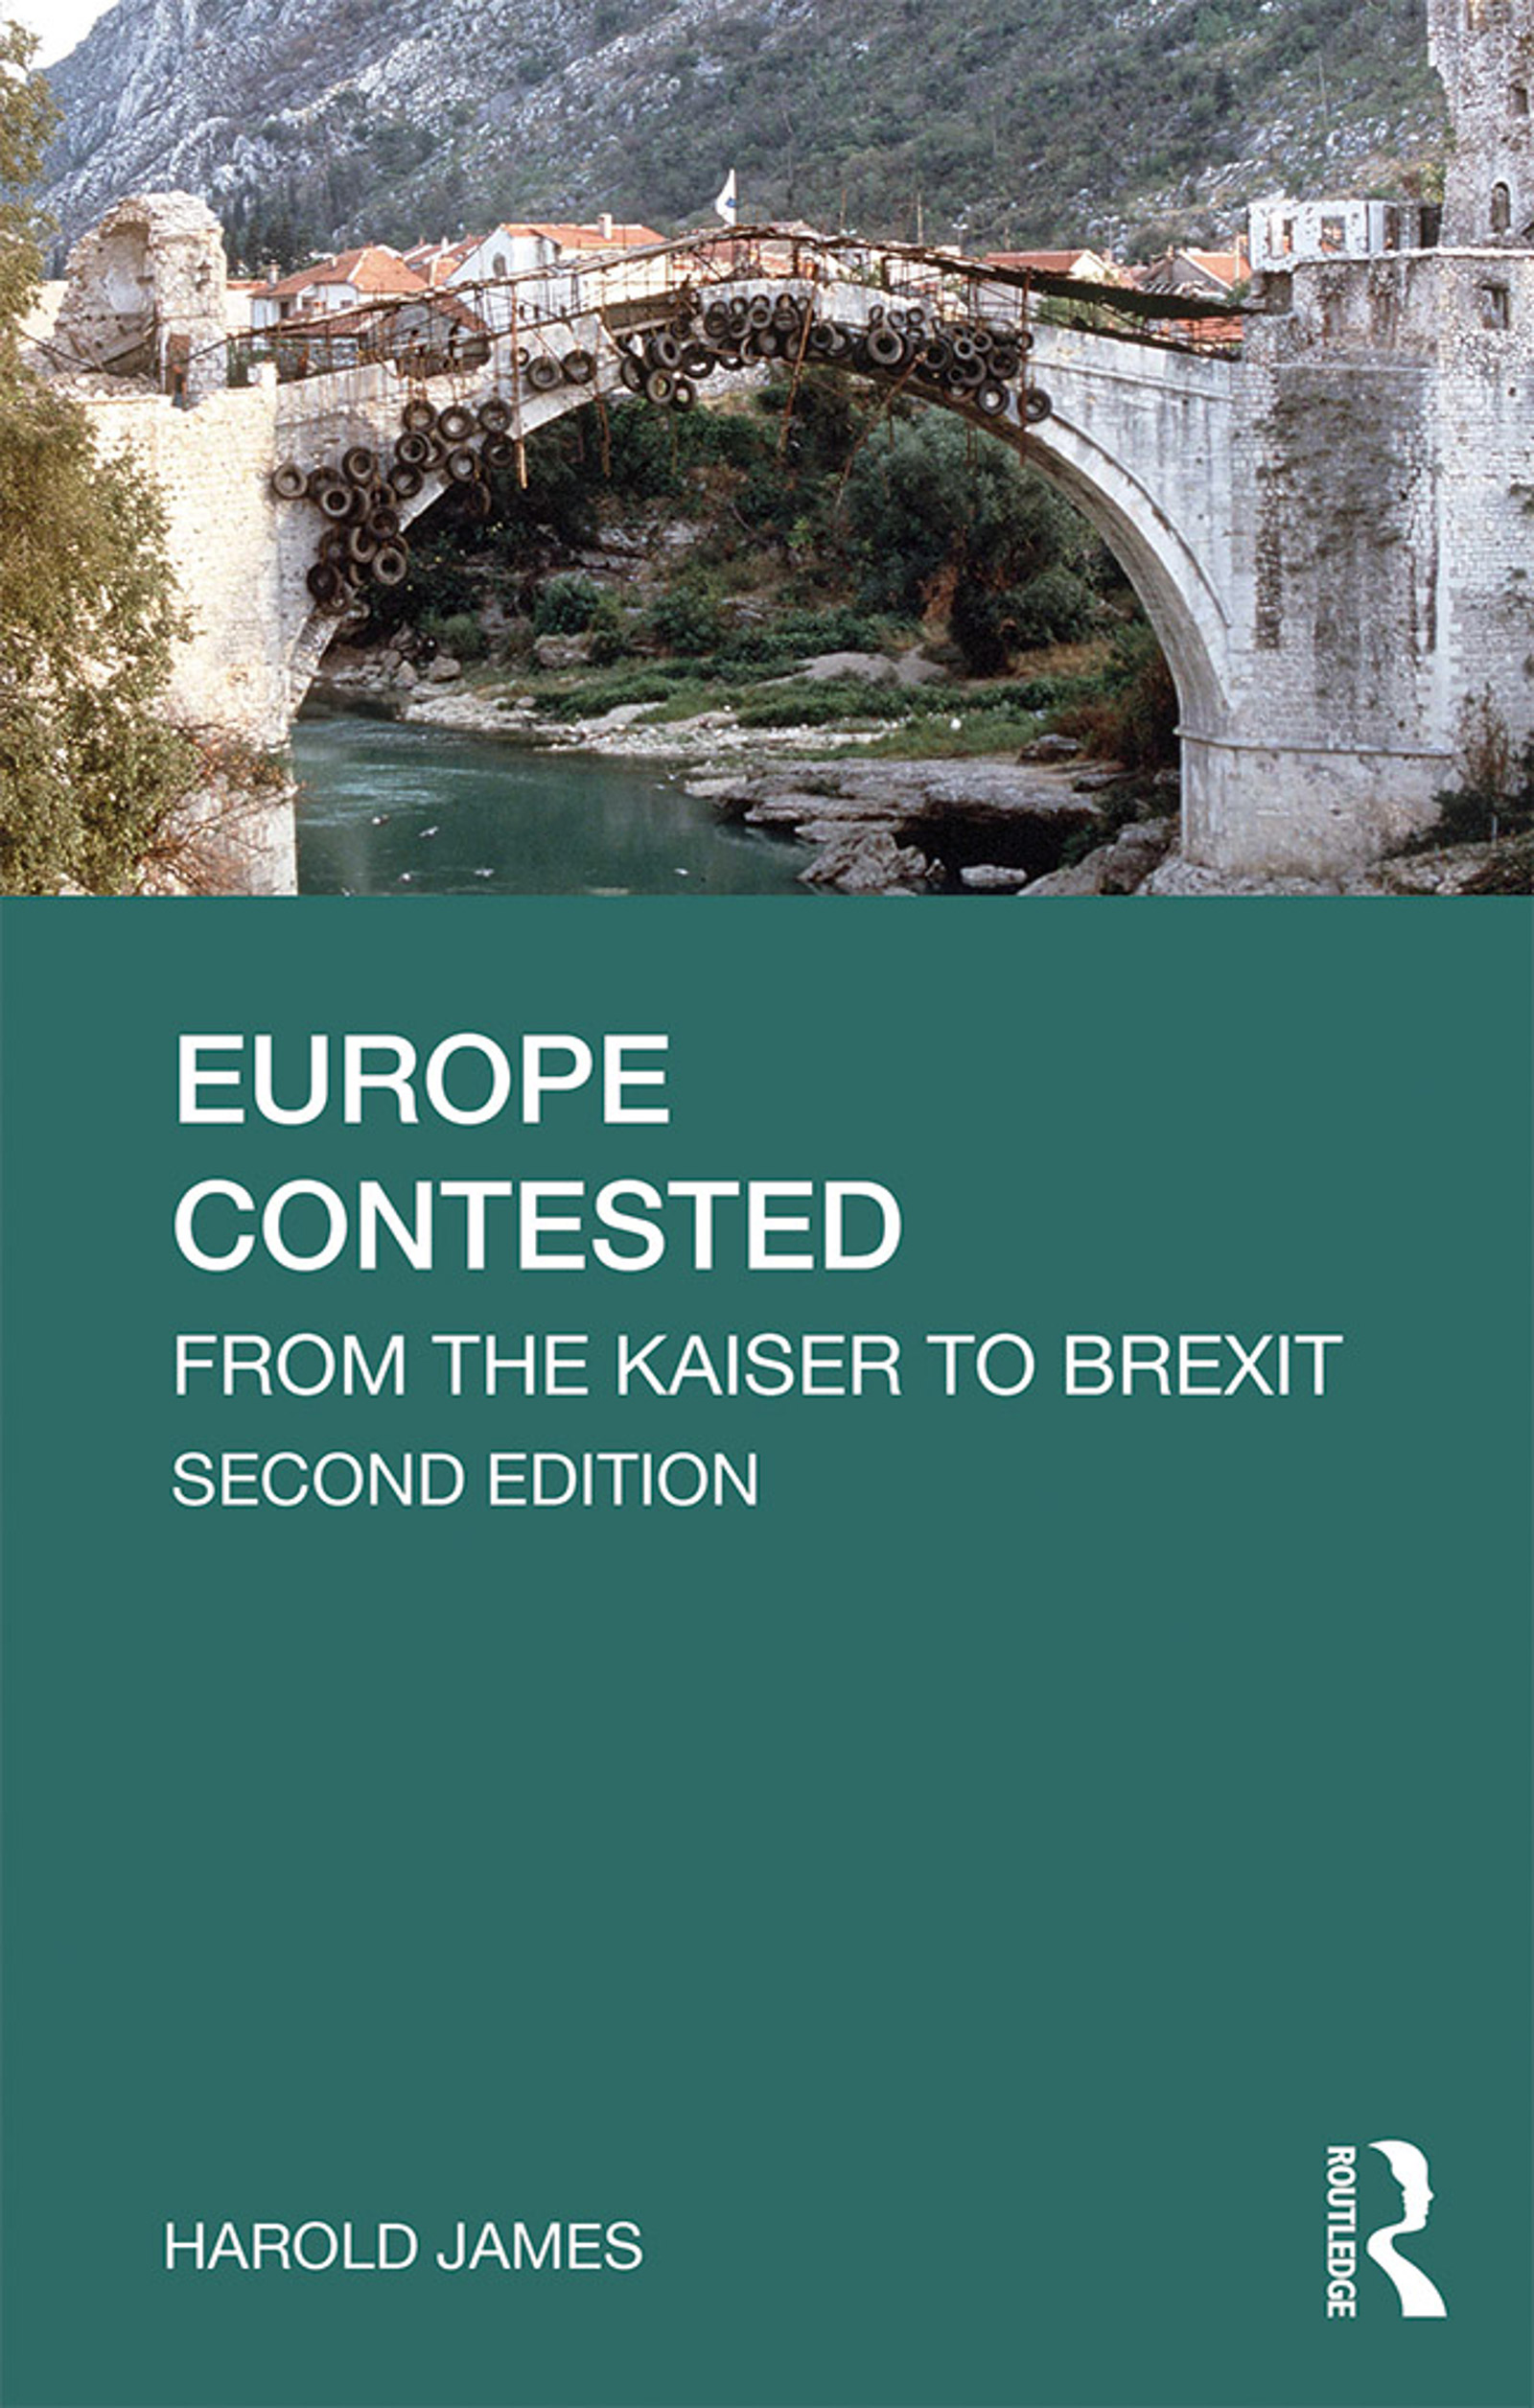 Europe Contested: From the Kaiser to Brexit book cover